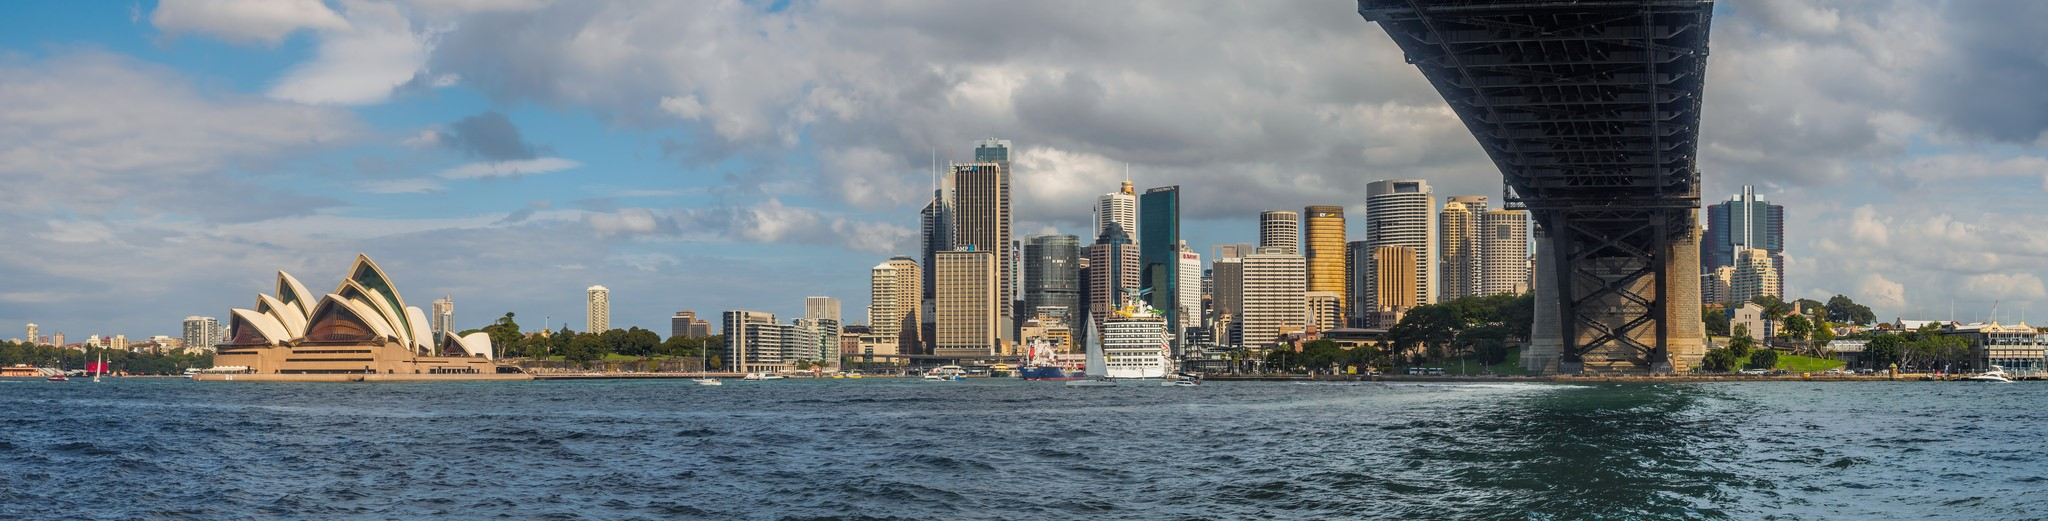 Sydney will host Australia's summit of South East Asian leaders next March (Photo: Flickr/Anthony Kernich)